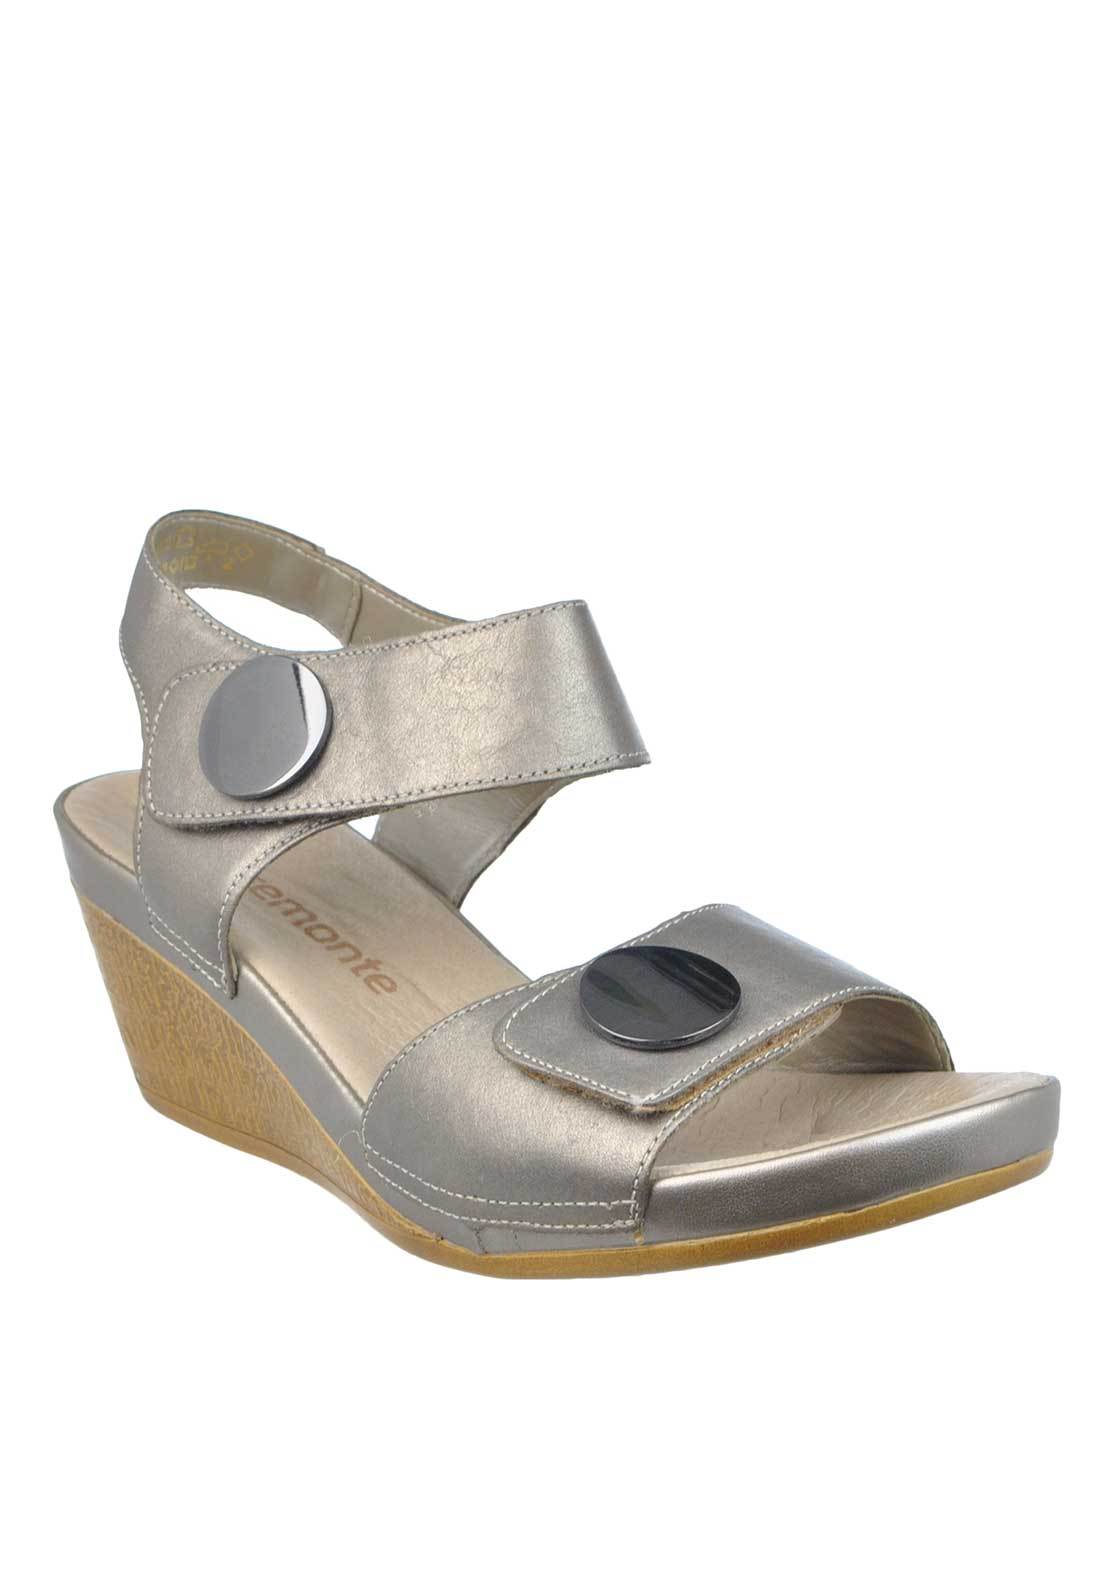 Remote Leather Metallic Wedged Sandals, Pewter